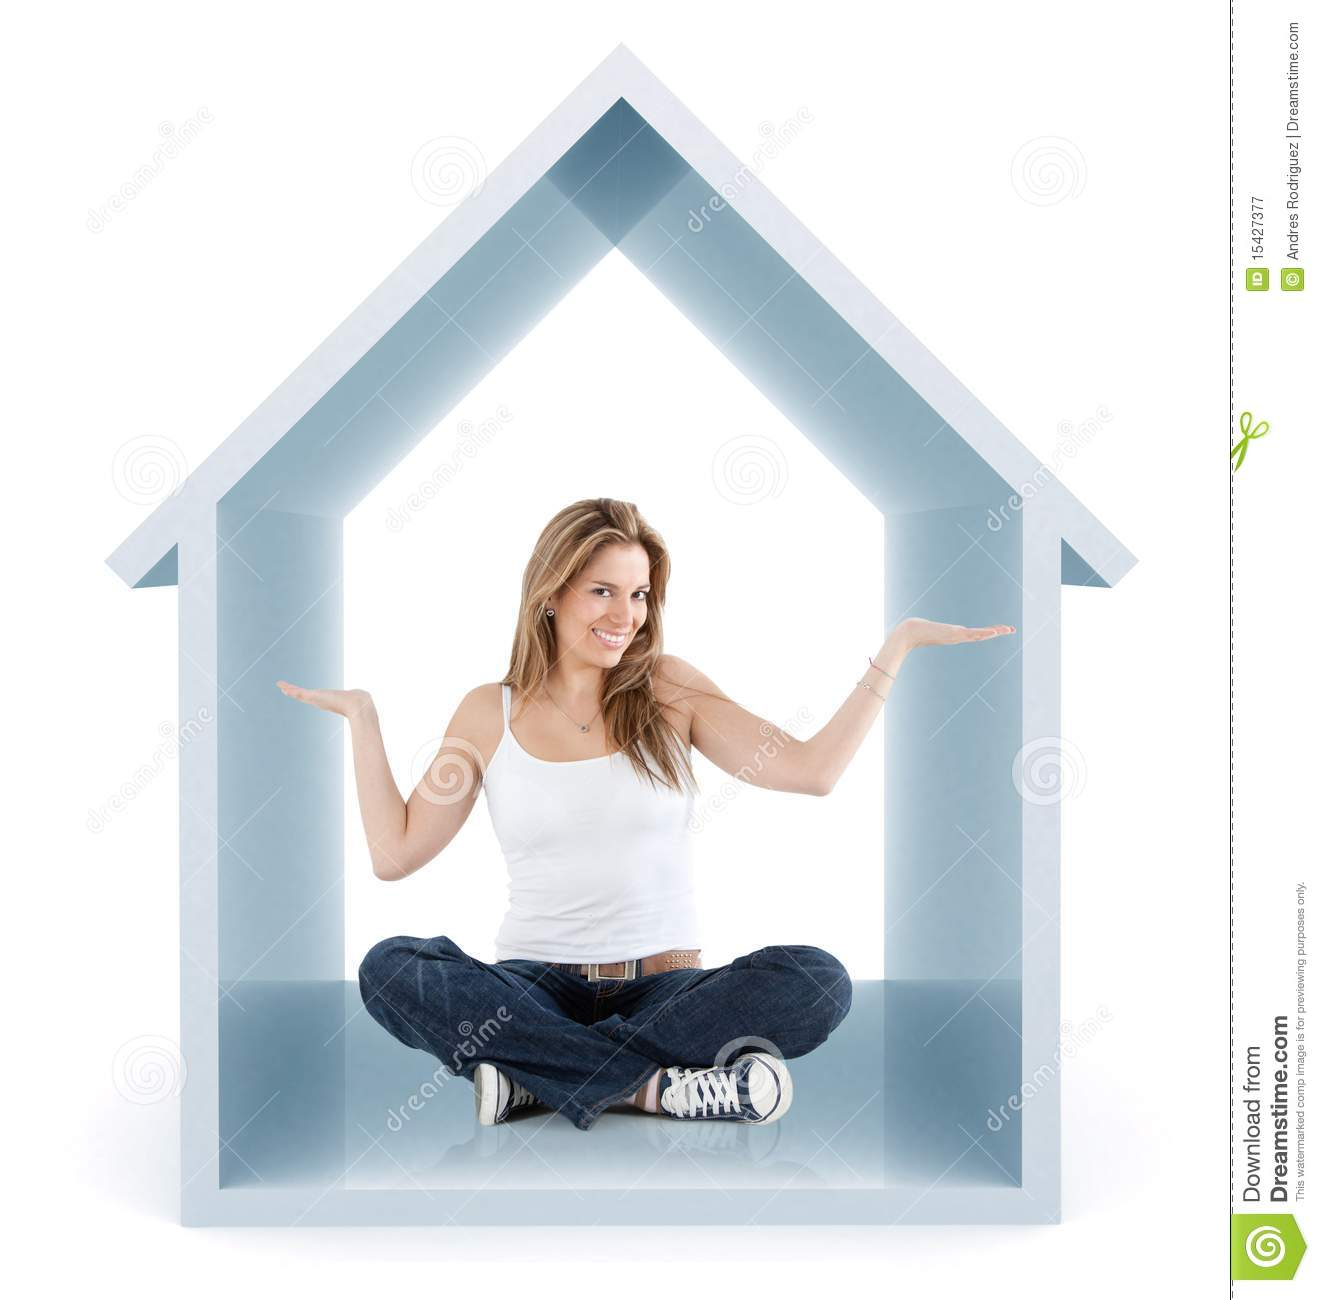 Woman inside a 3d house stock image Image of person